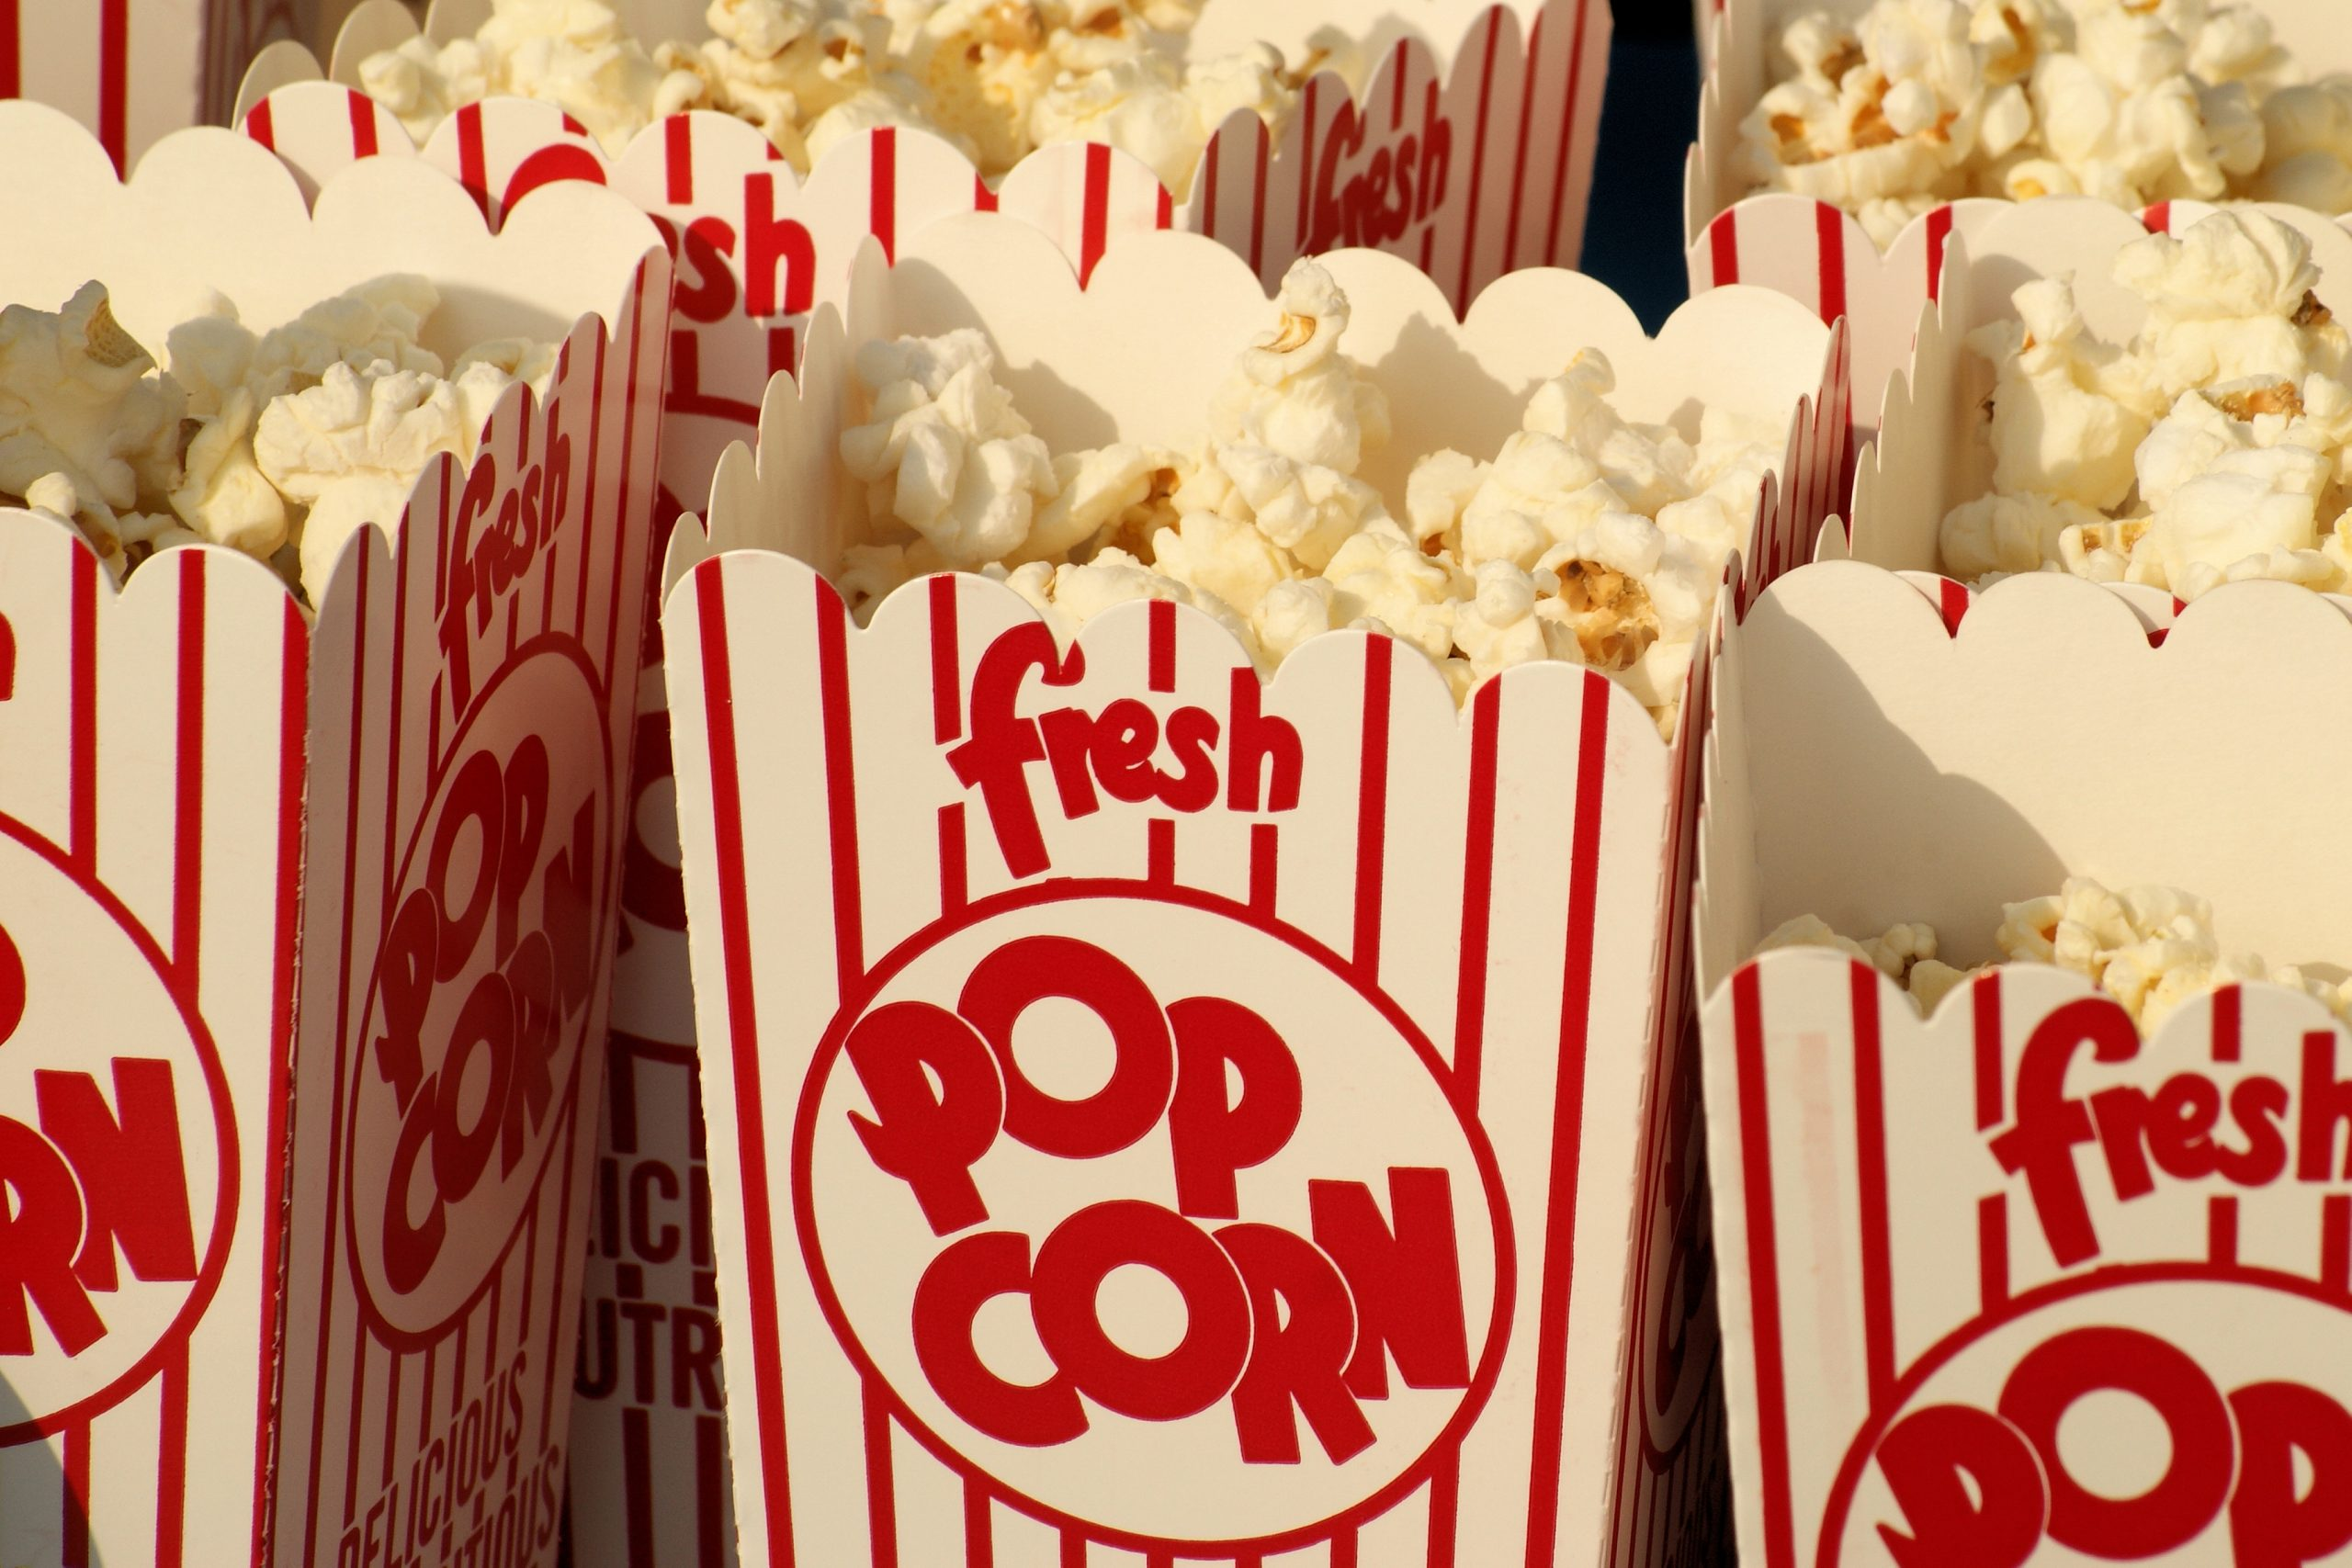 5@5:  Denial Of Popcorn Leads To Brawl With Police